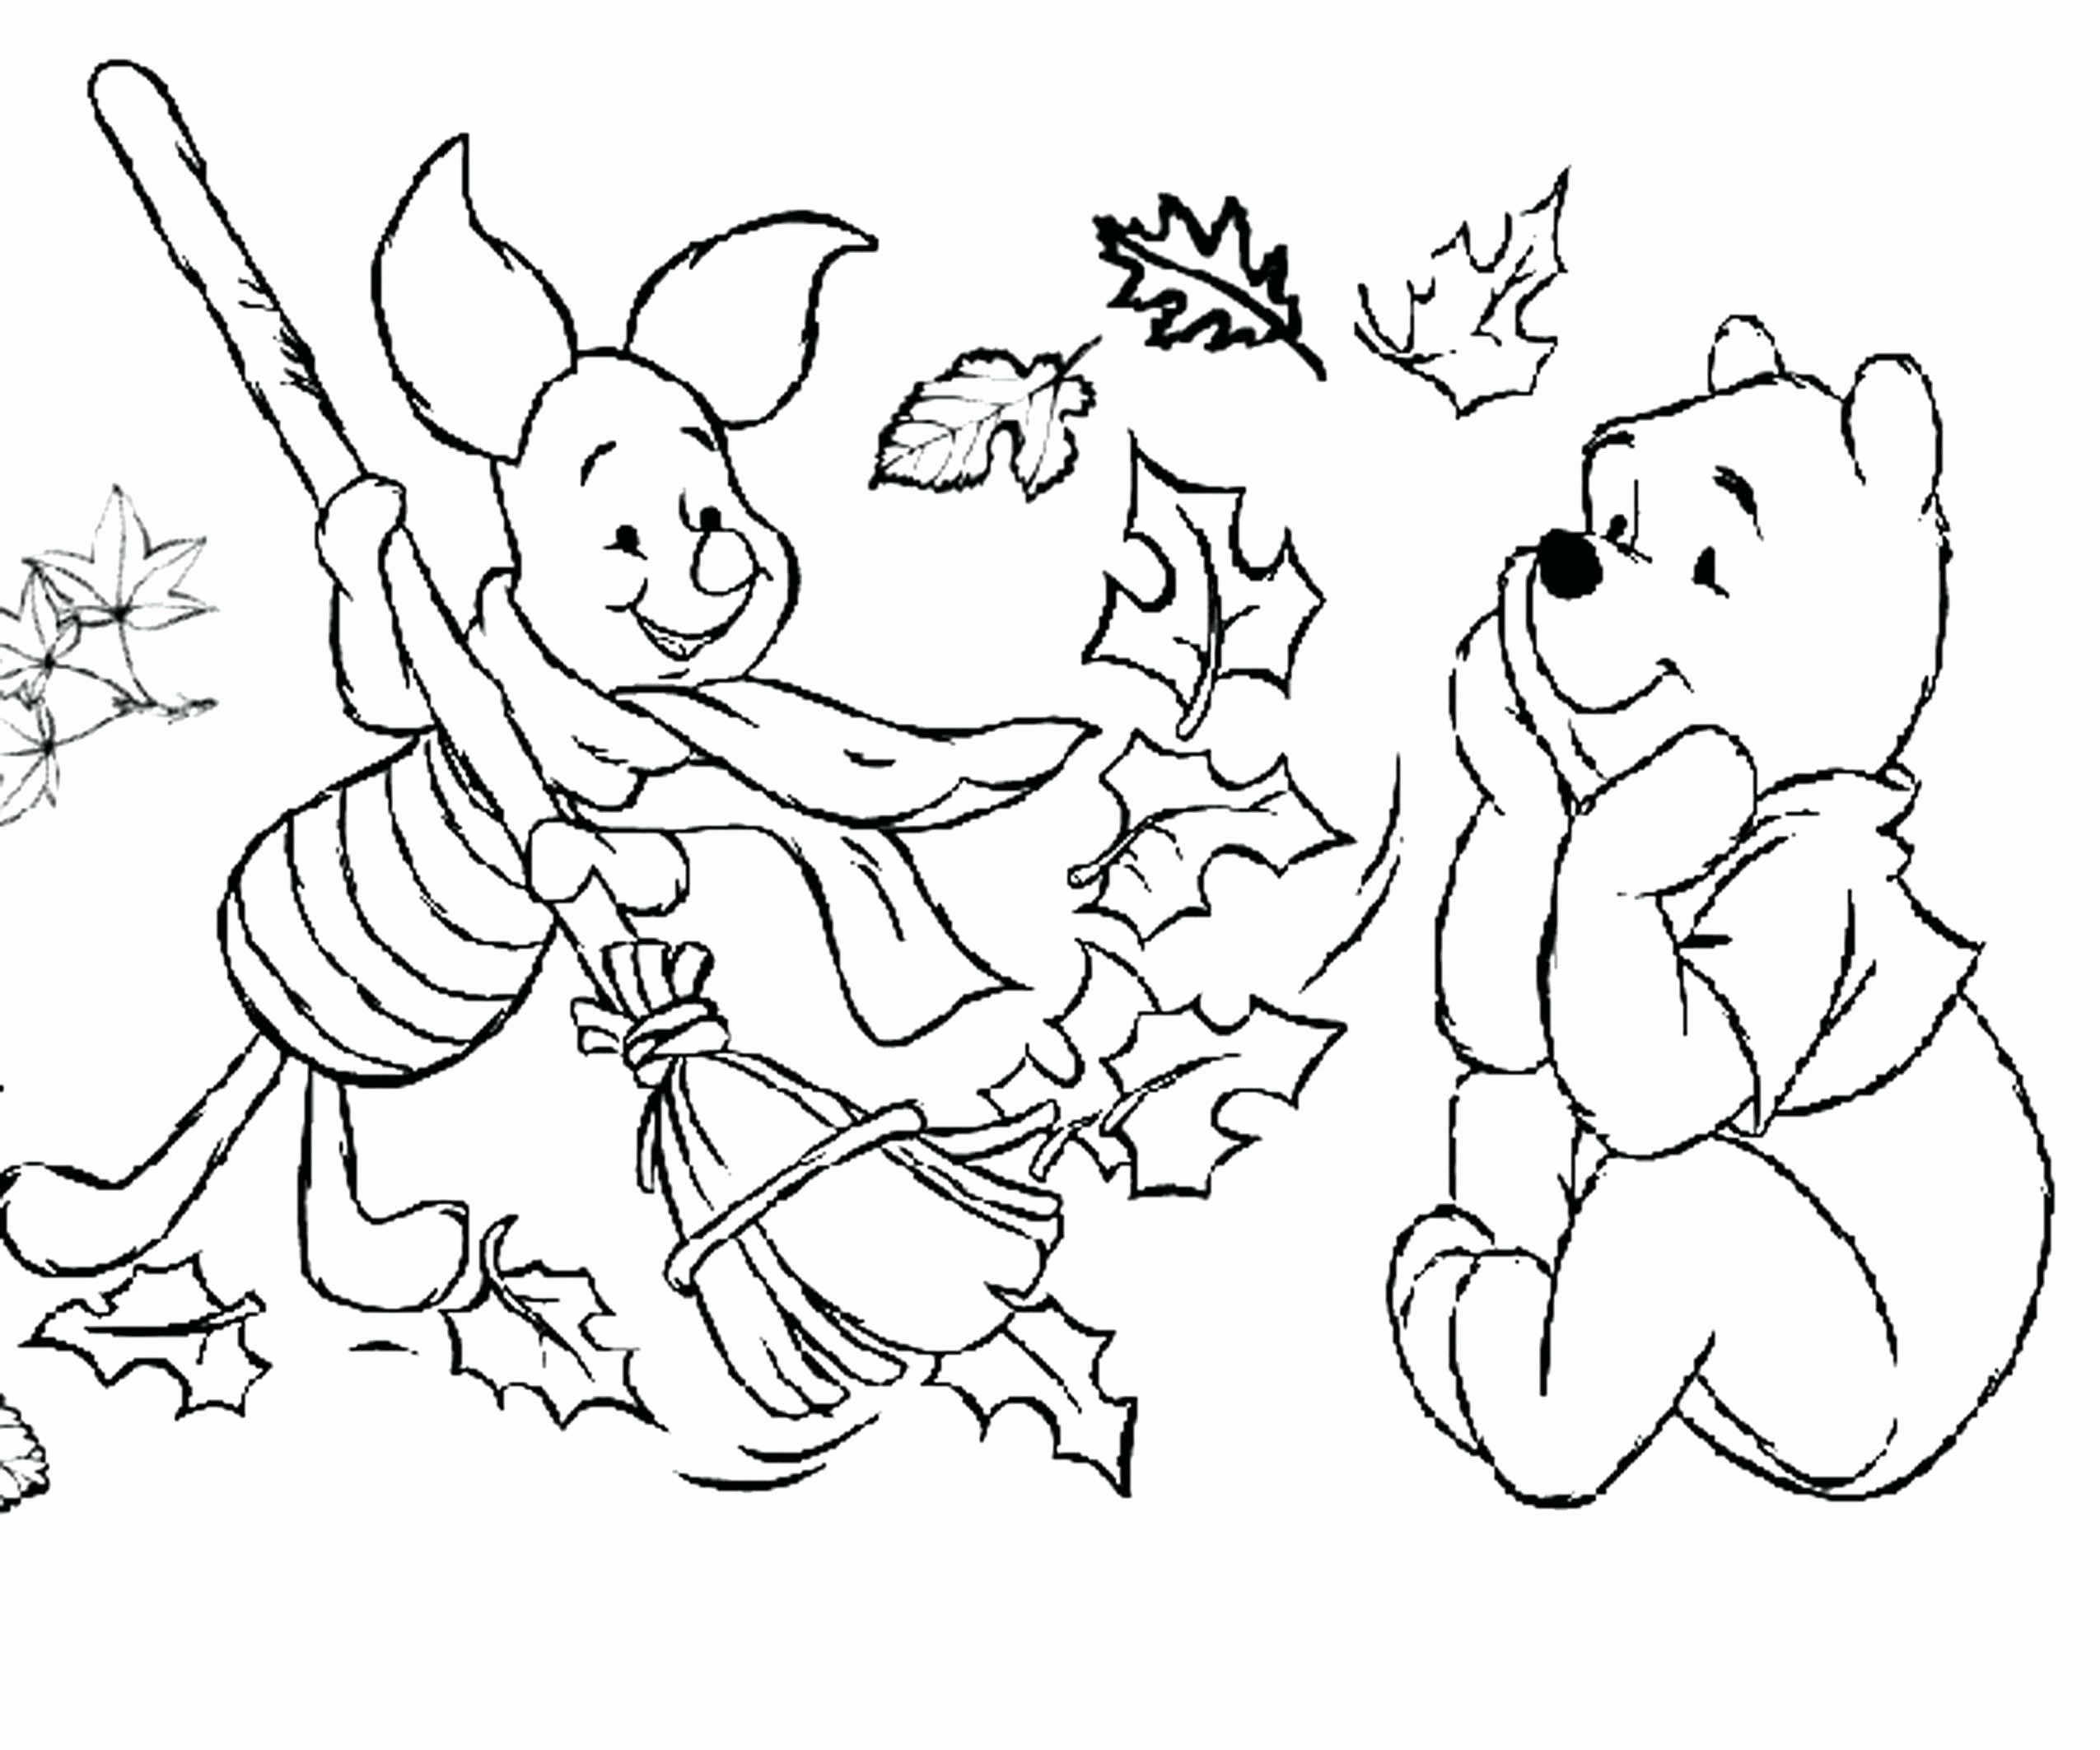 coloring pages for bible lessons Download-Free Printable Disney Coloring Pages 13-q